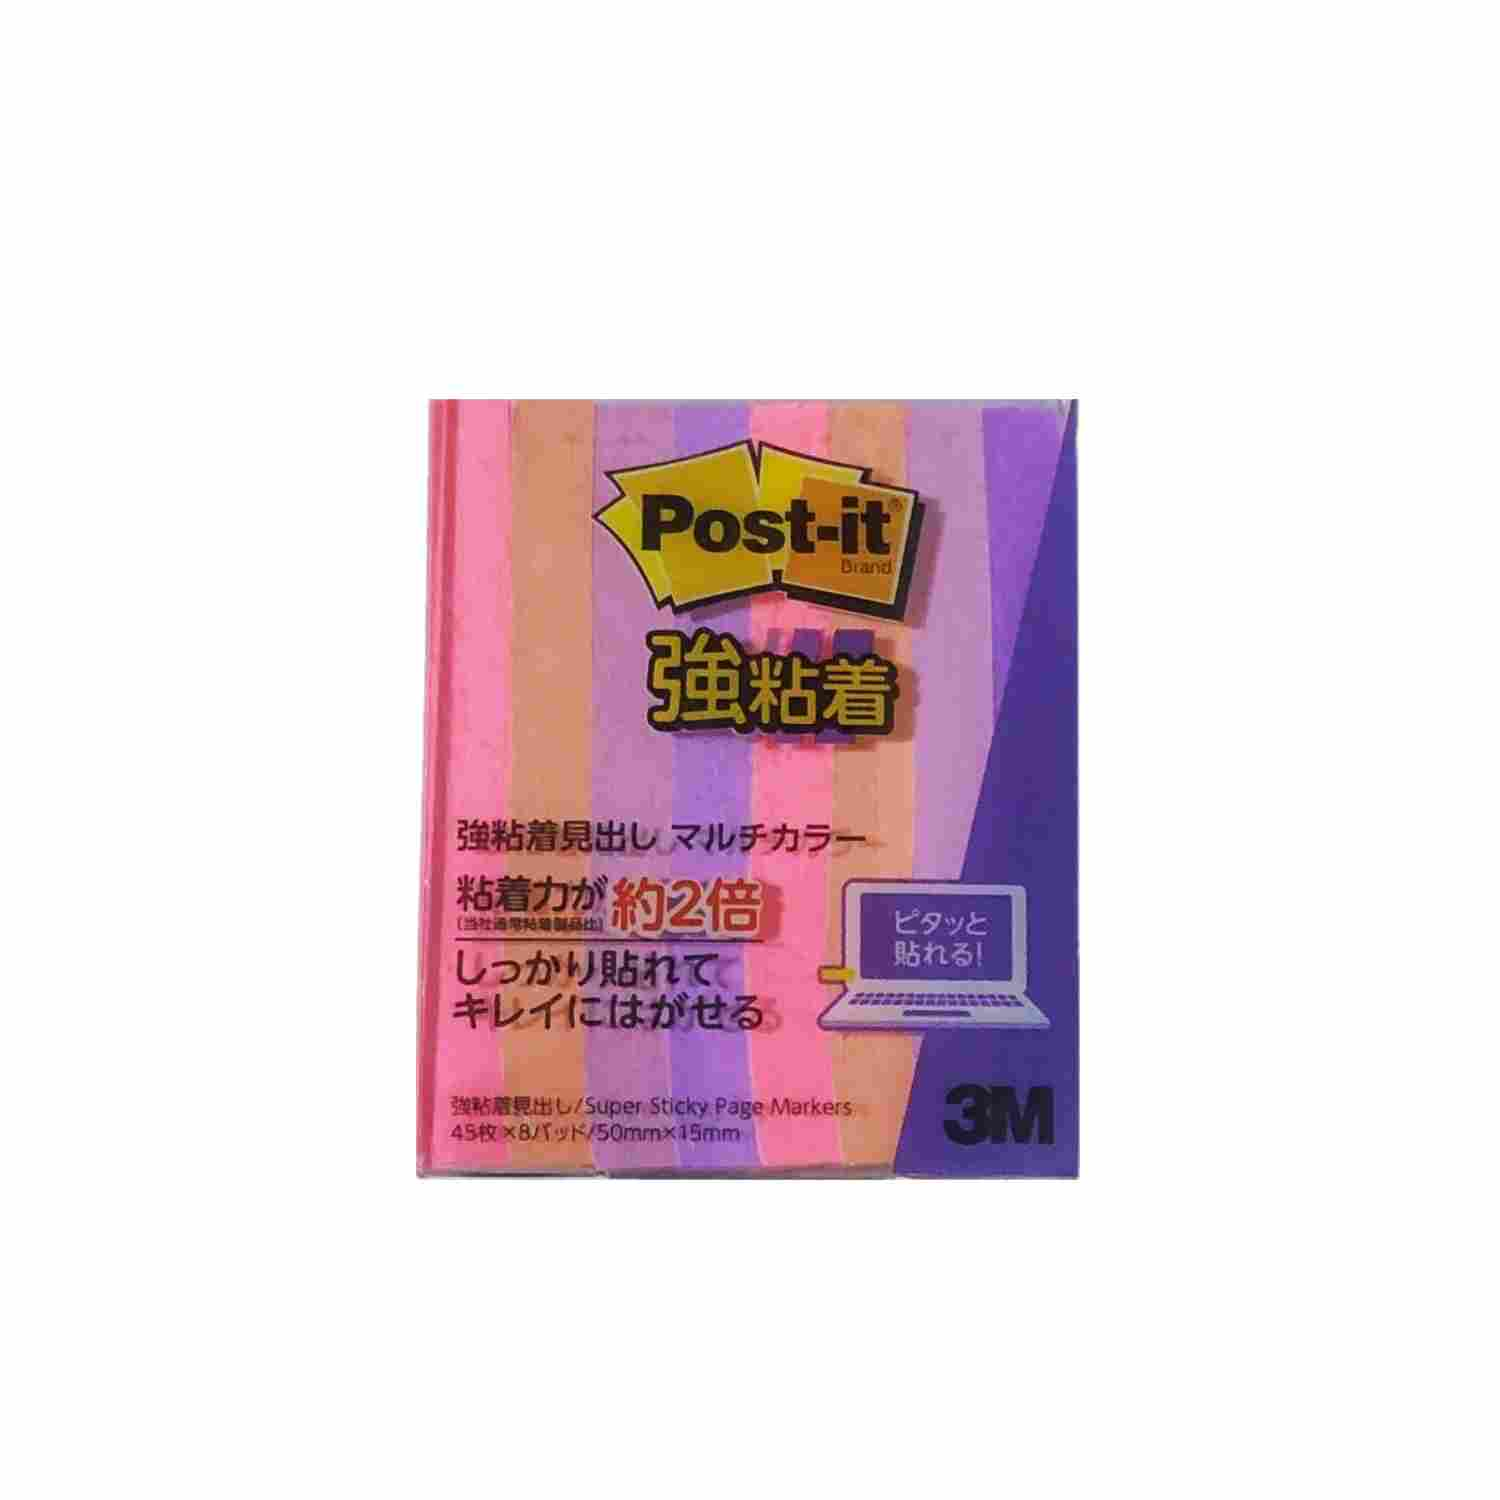 Post it, Special Rose Mini - 360 flags - JP